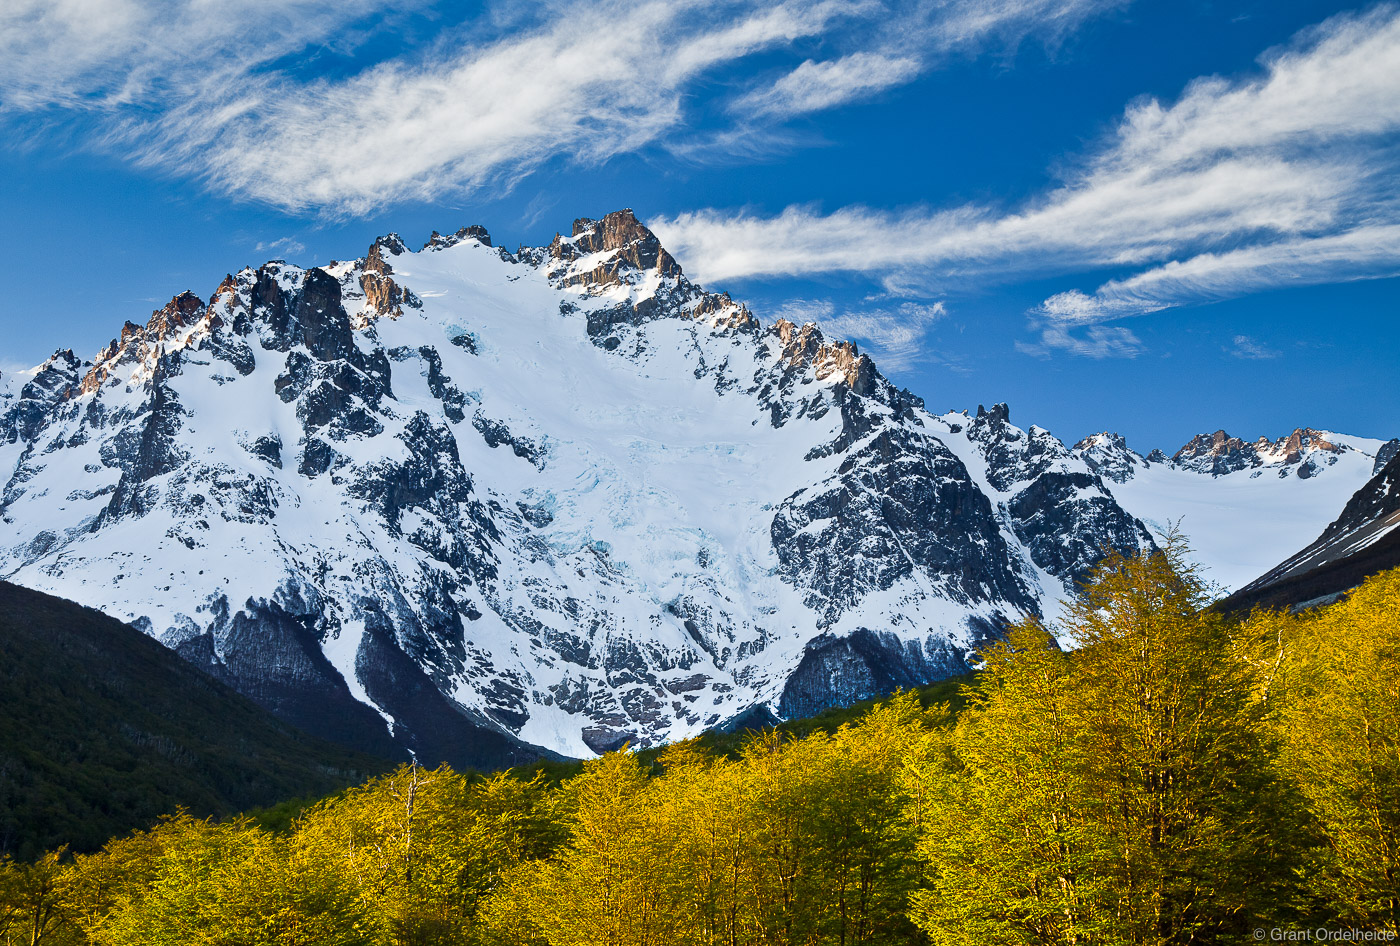 Cerro Peñon, the second tallest peak in the Cerro Castillo National reserve, stands tall above spring lenga trees.